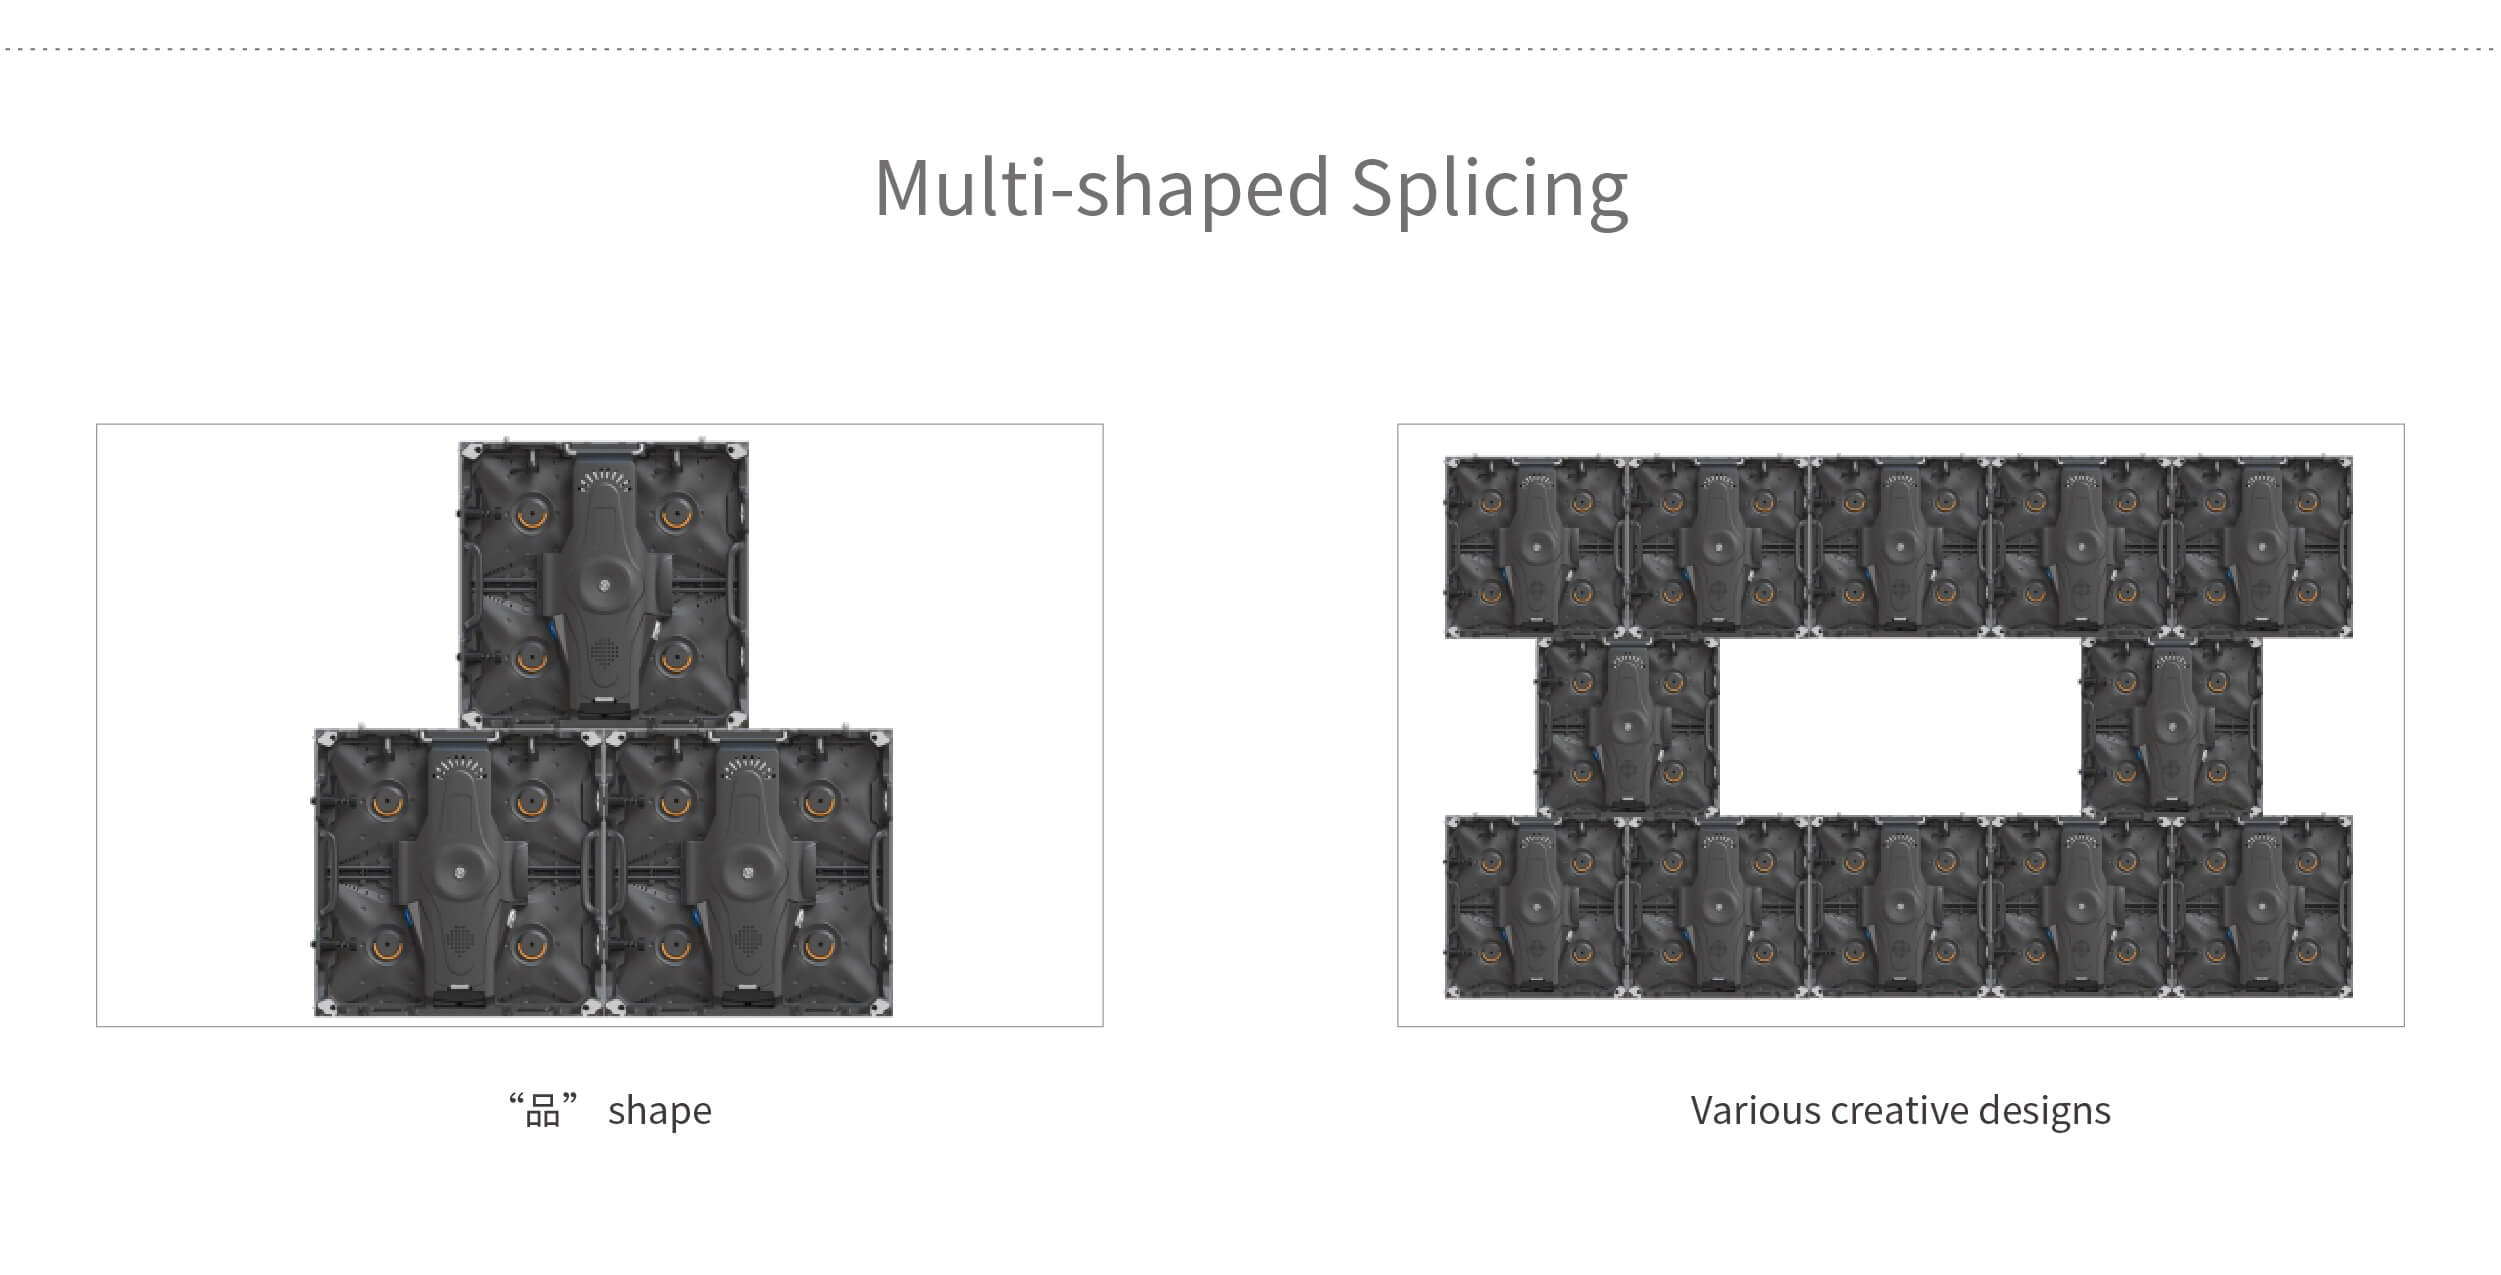 shaped splicing led video wall